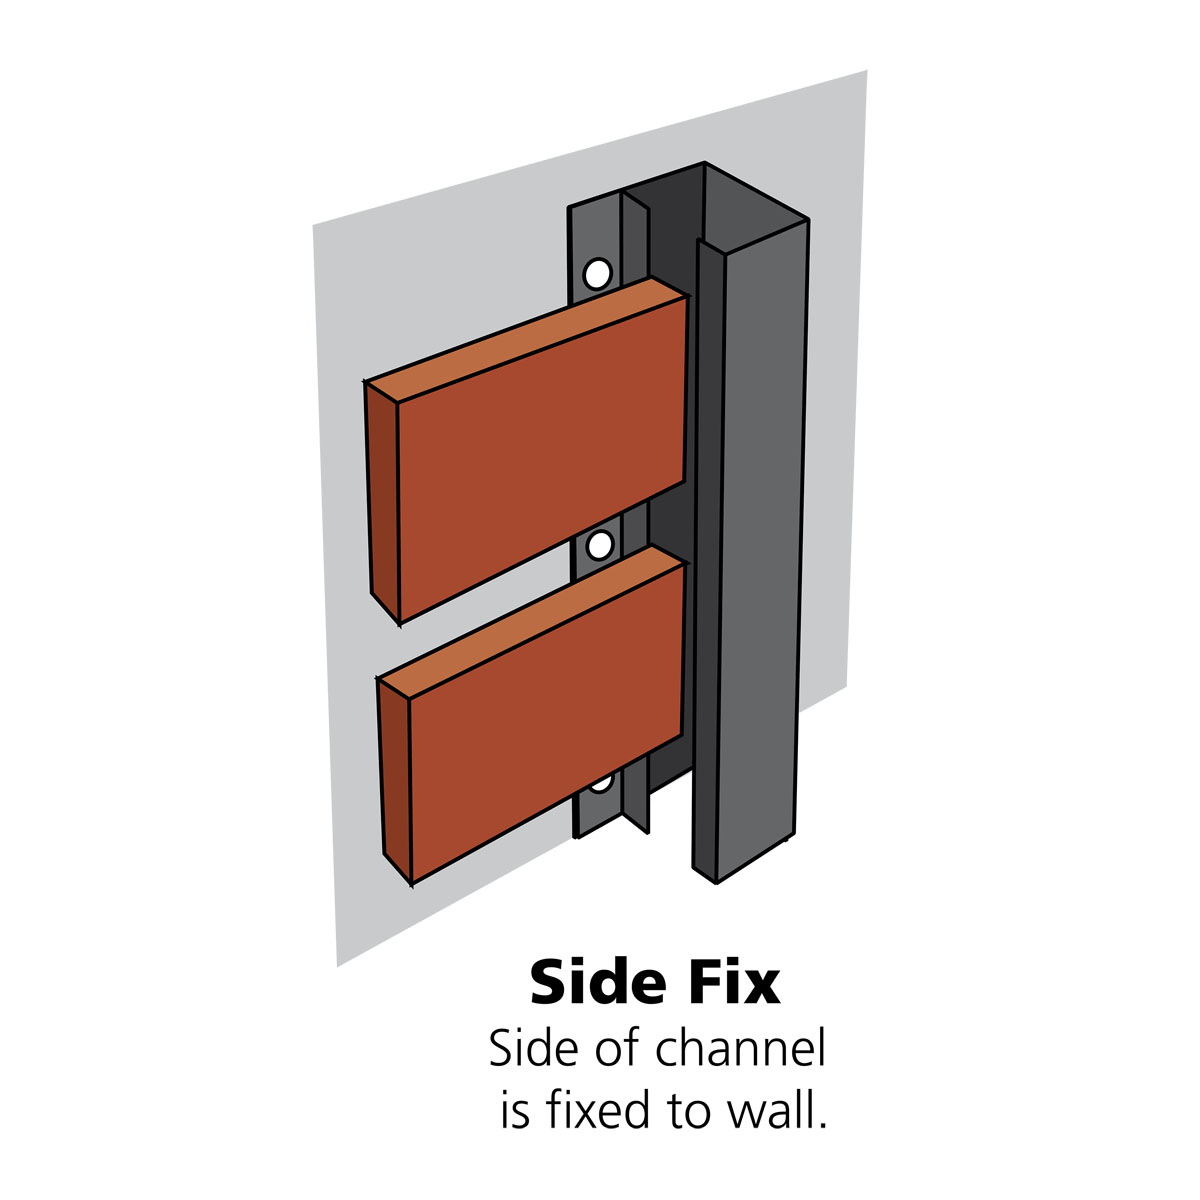 Screen Up side fix in illustration